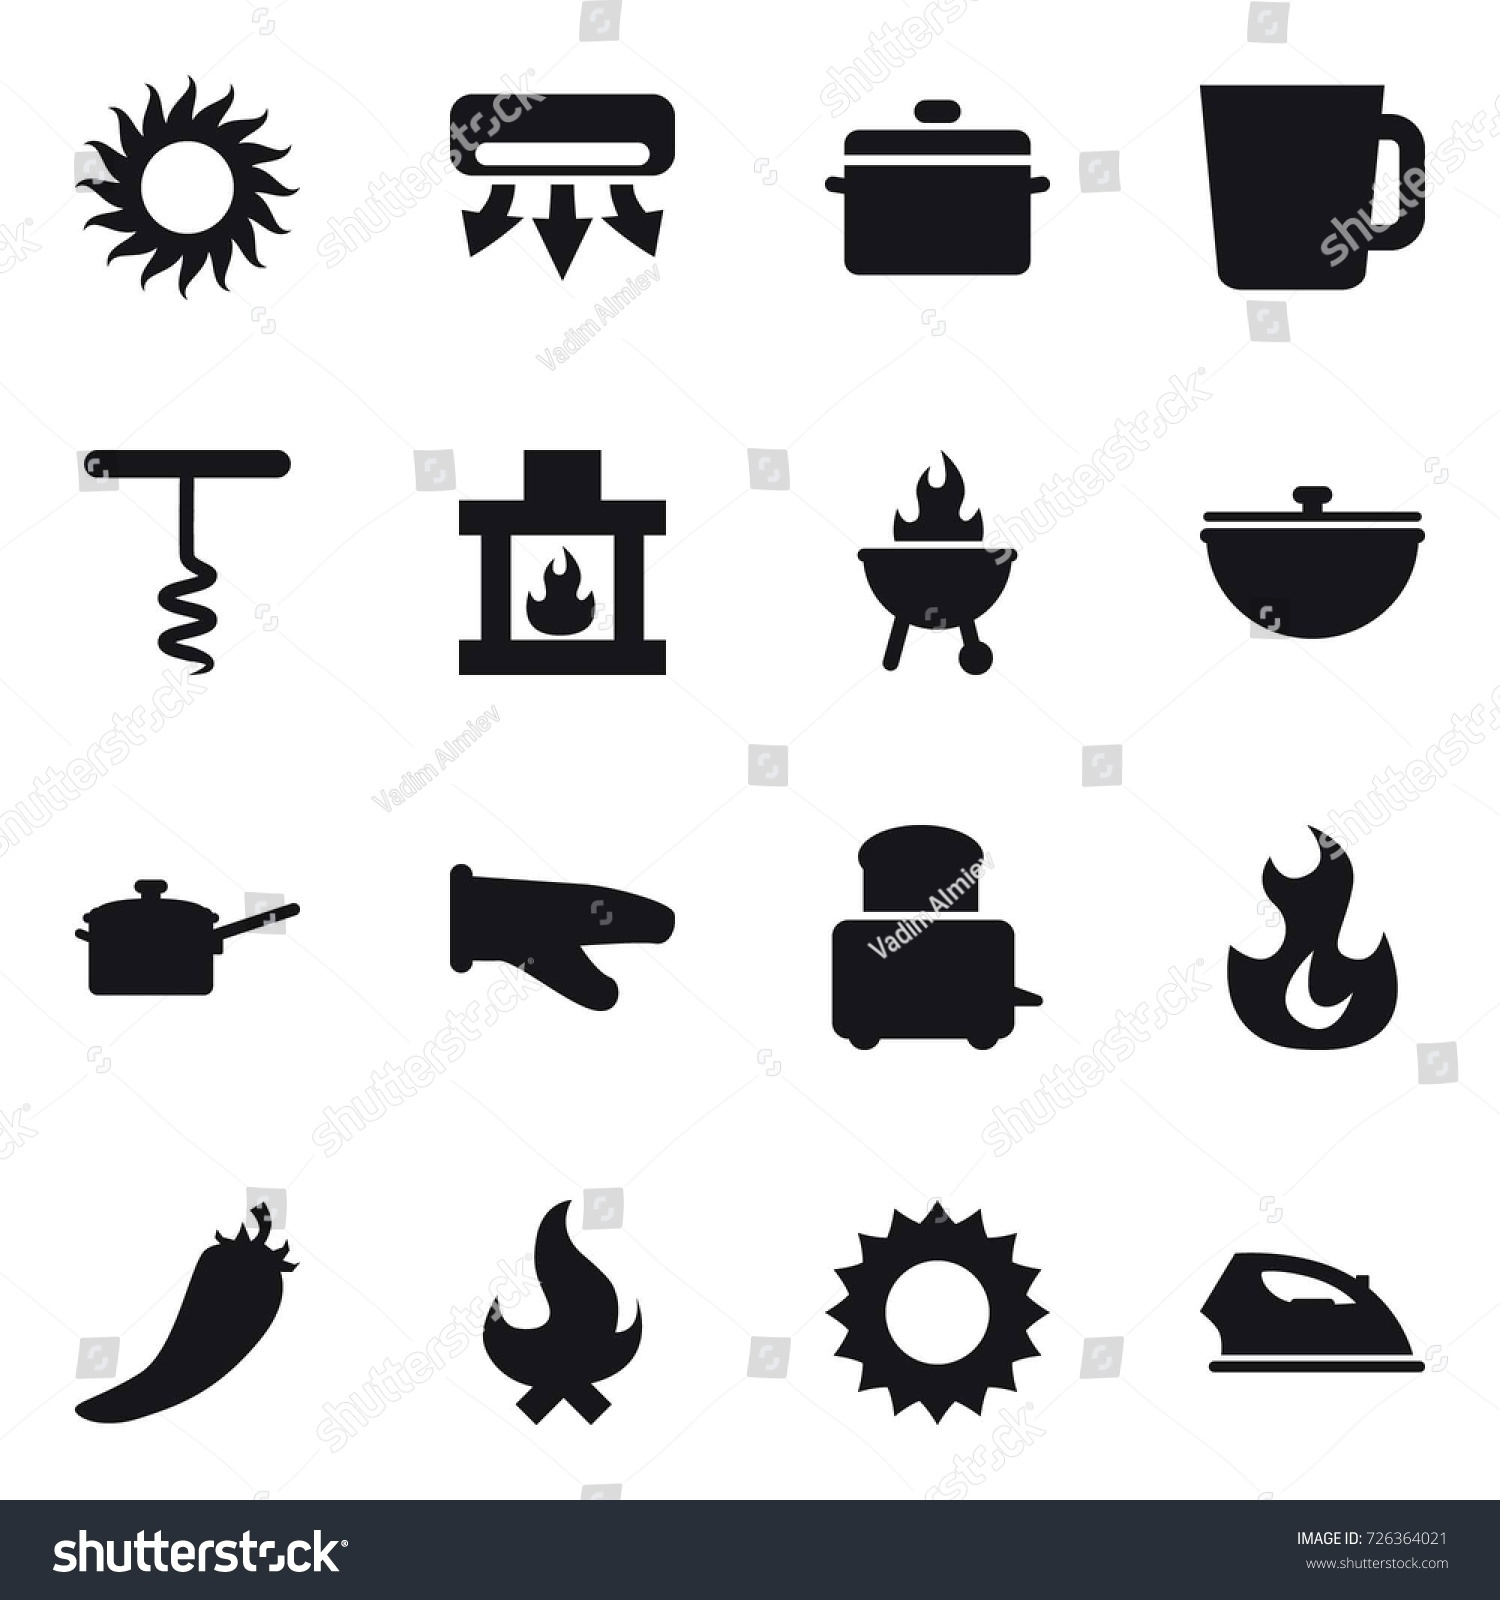 16 vector icon set sun air stock vector 726364021 shutterstock